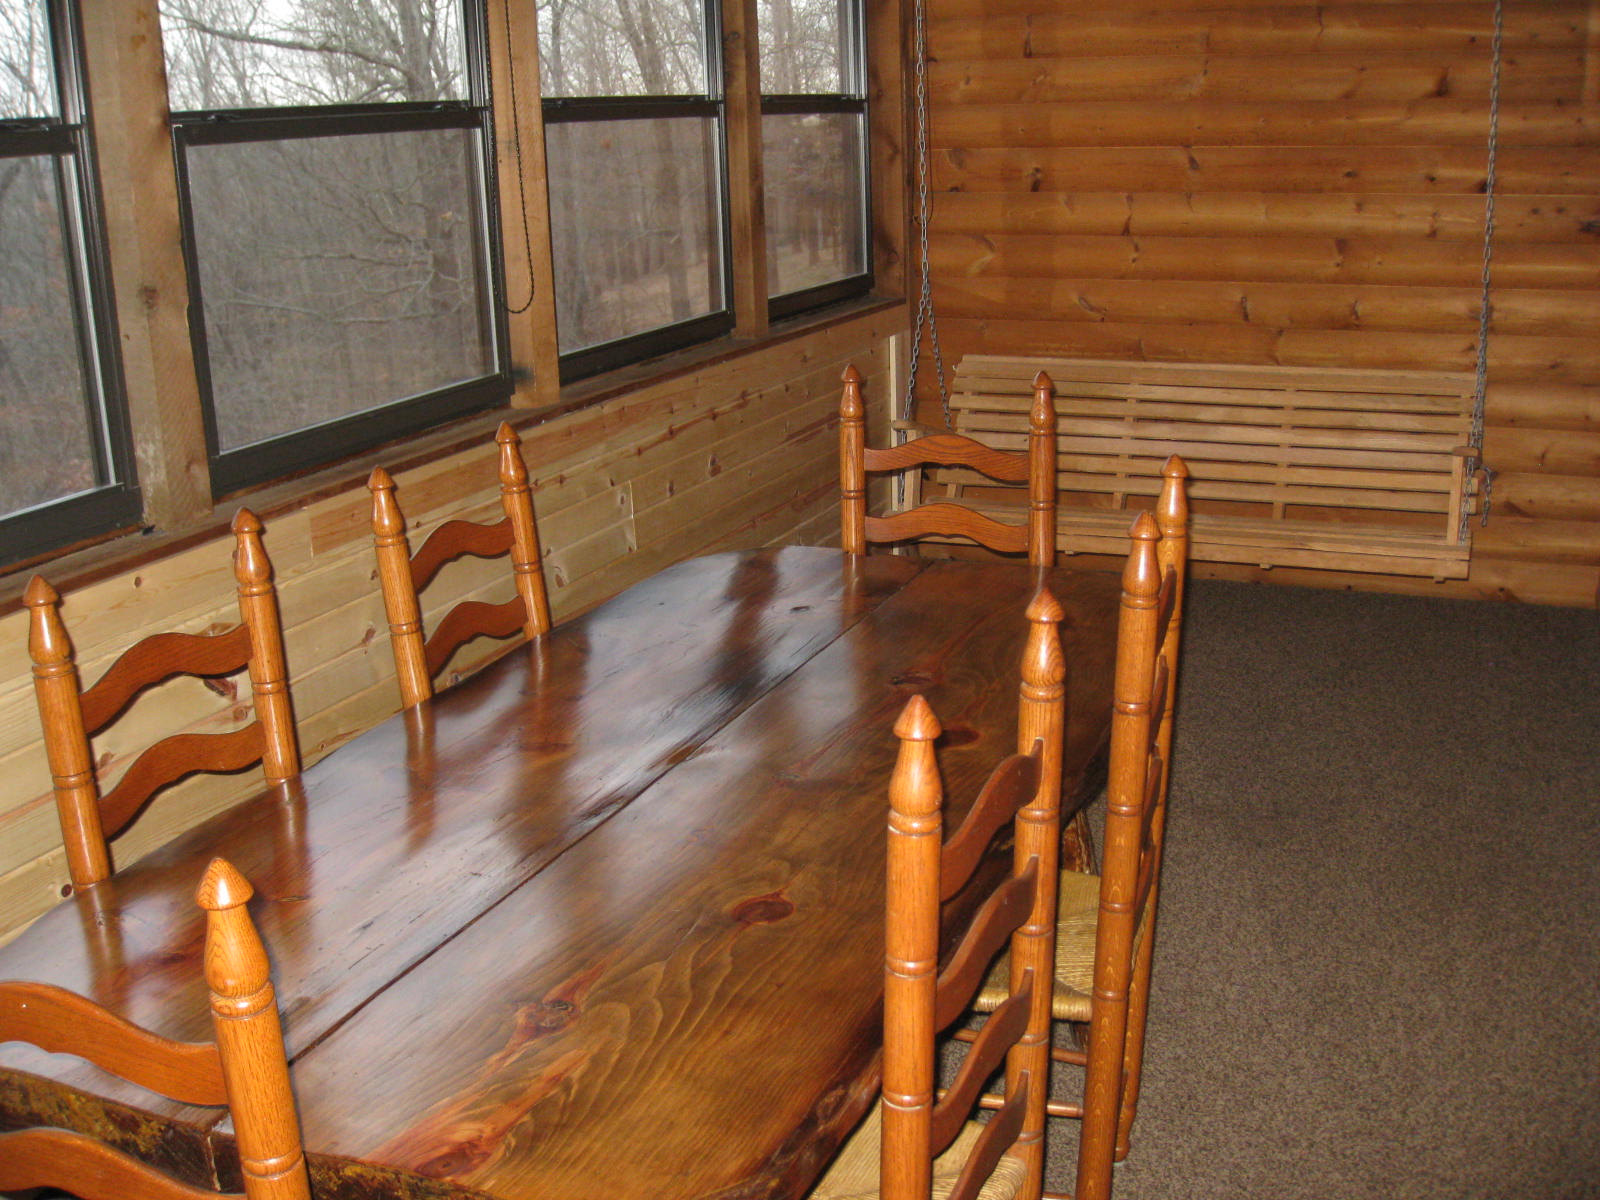 branson log the and campgrounds mo silver table pin wilderness dollar rentals missouri near premier rock lake cabin rvs cabins attraction s a city campground